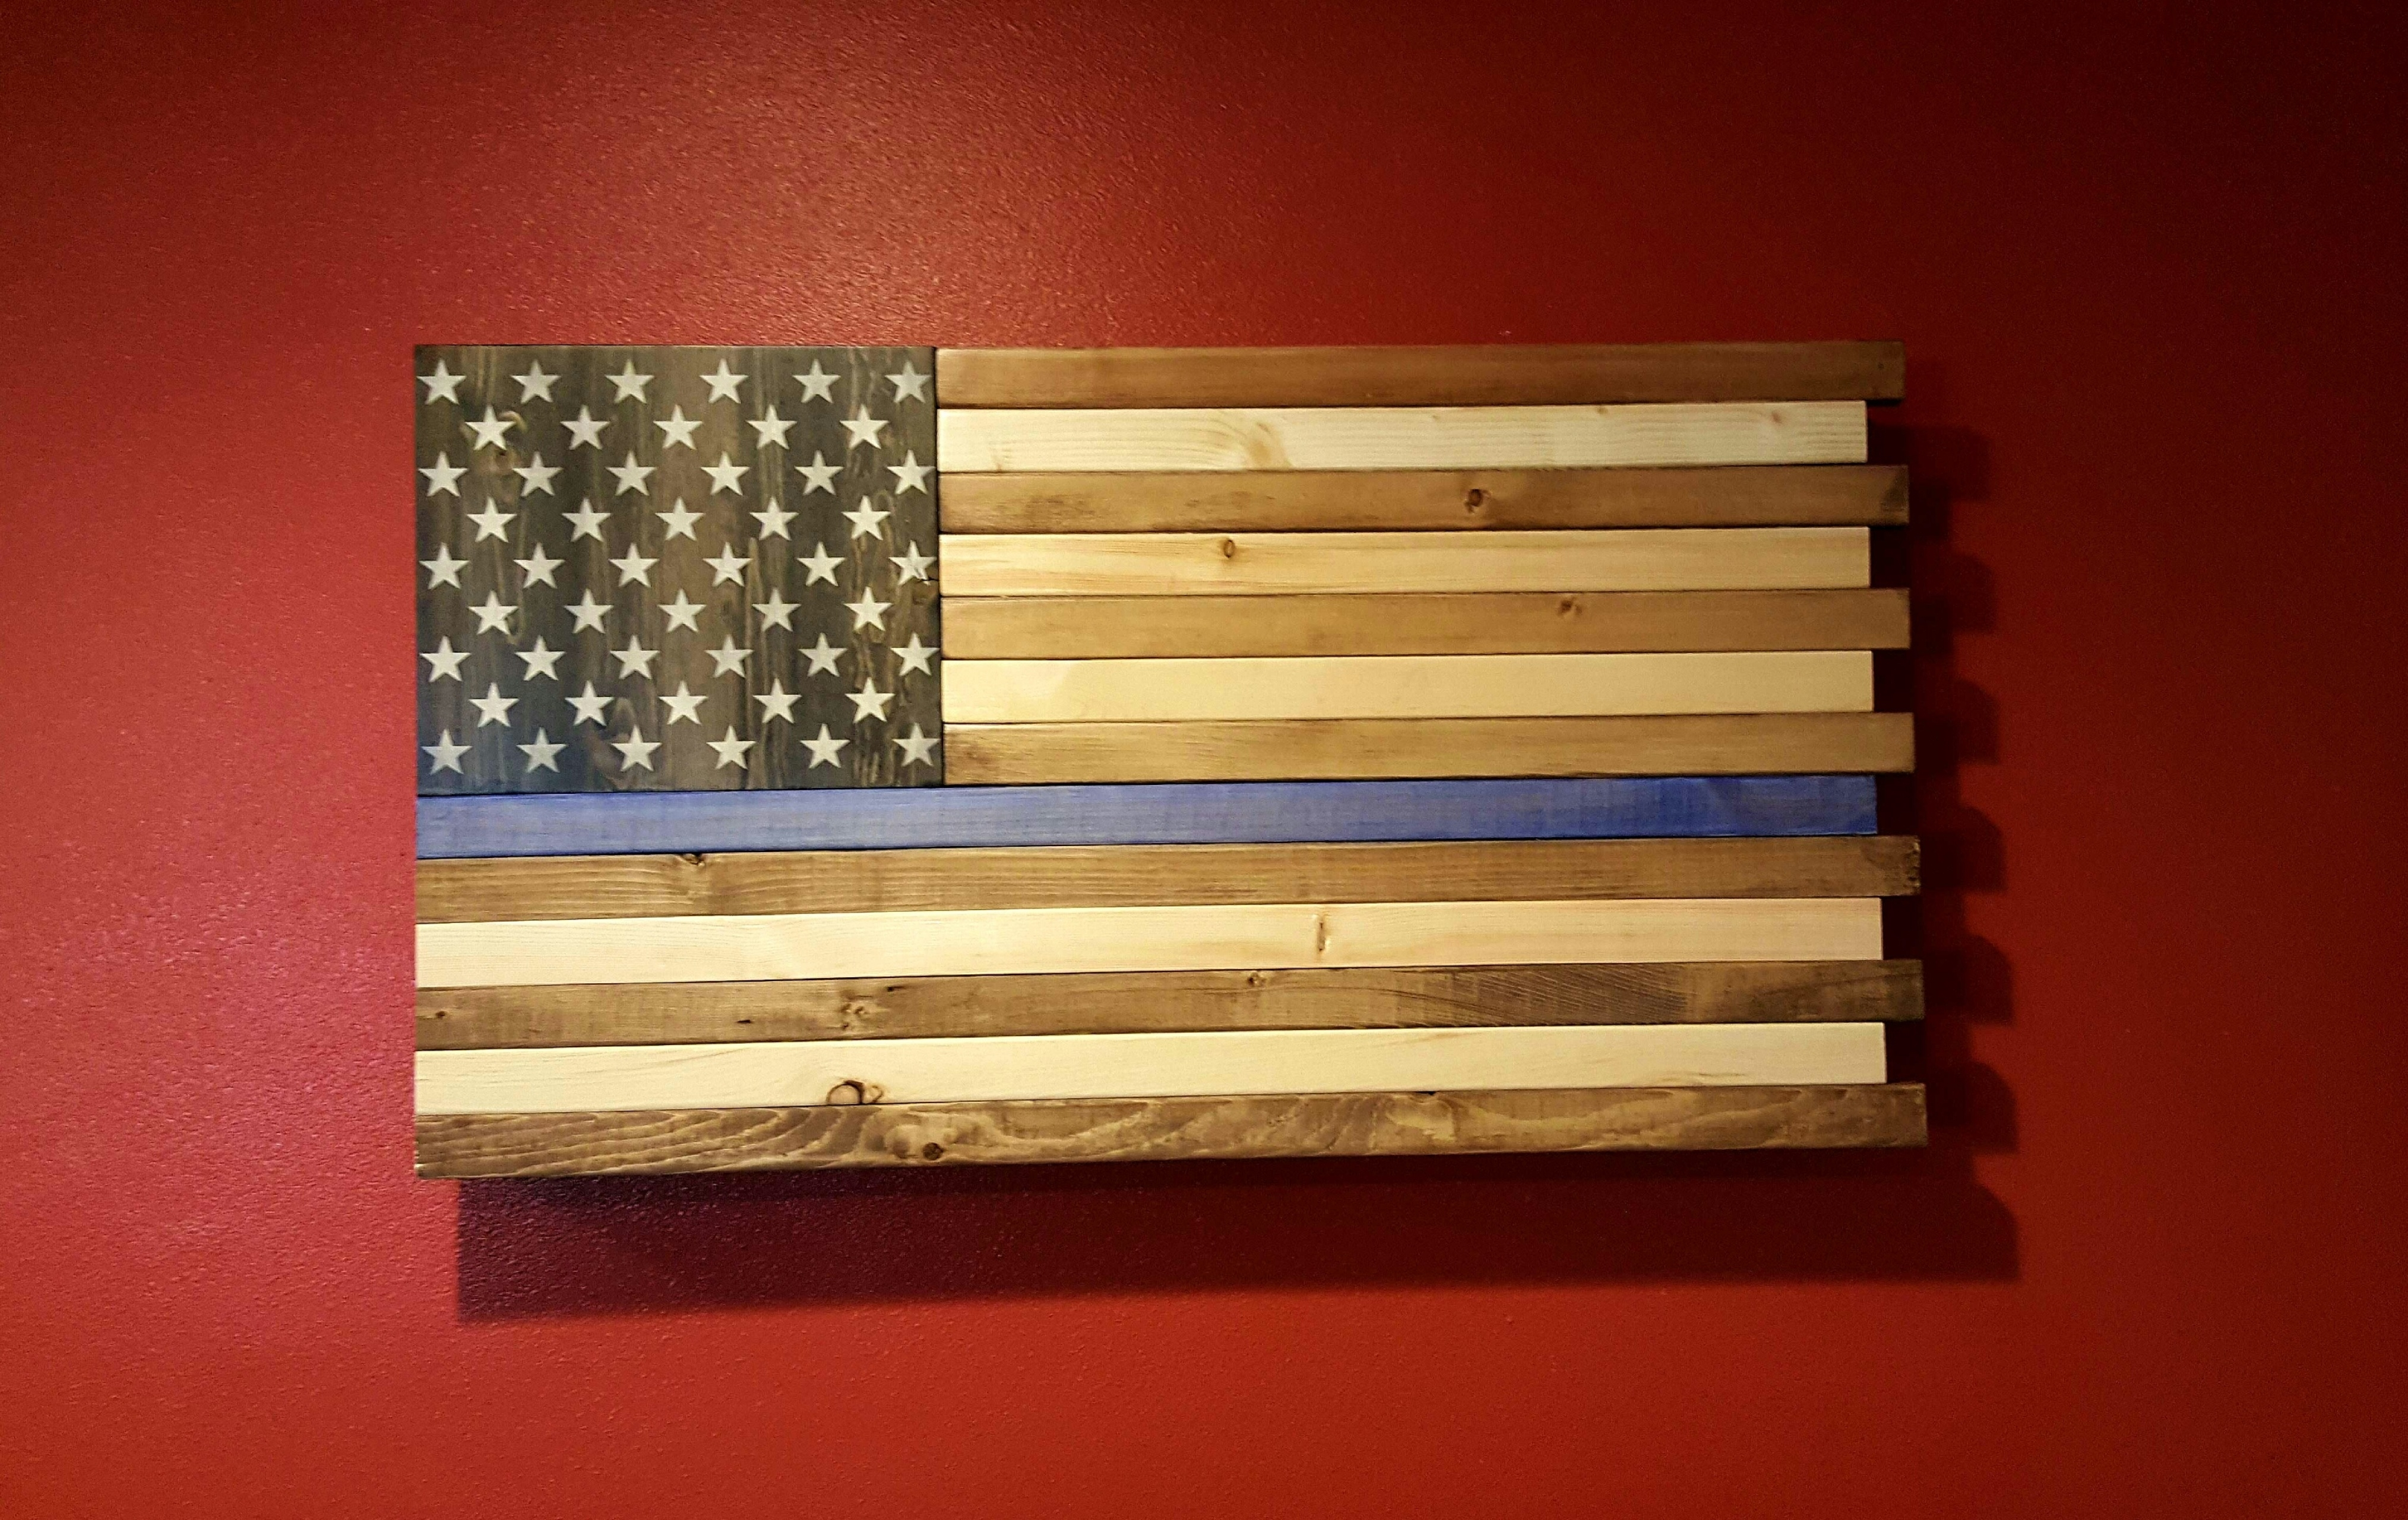 The Thin Blue Line Rustic American Flag Wall Art Regarding Most Current Rustic American Flag Wall Art (Gallery 9 of 20)